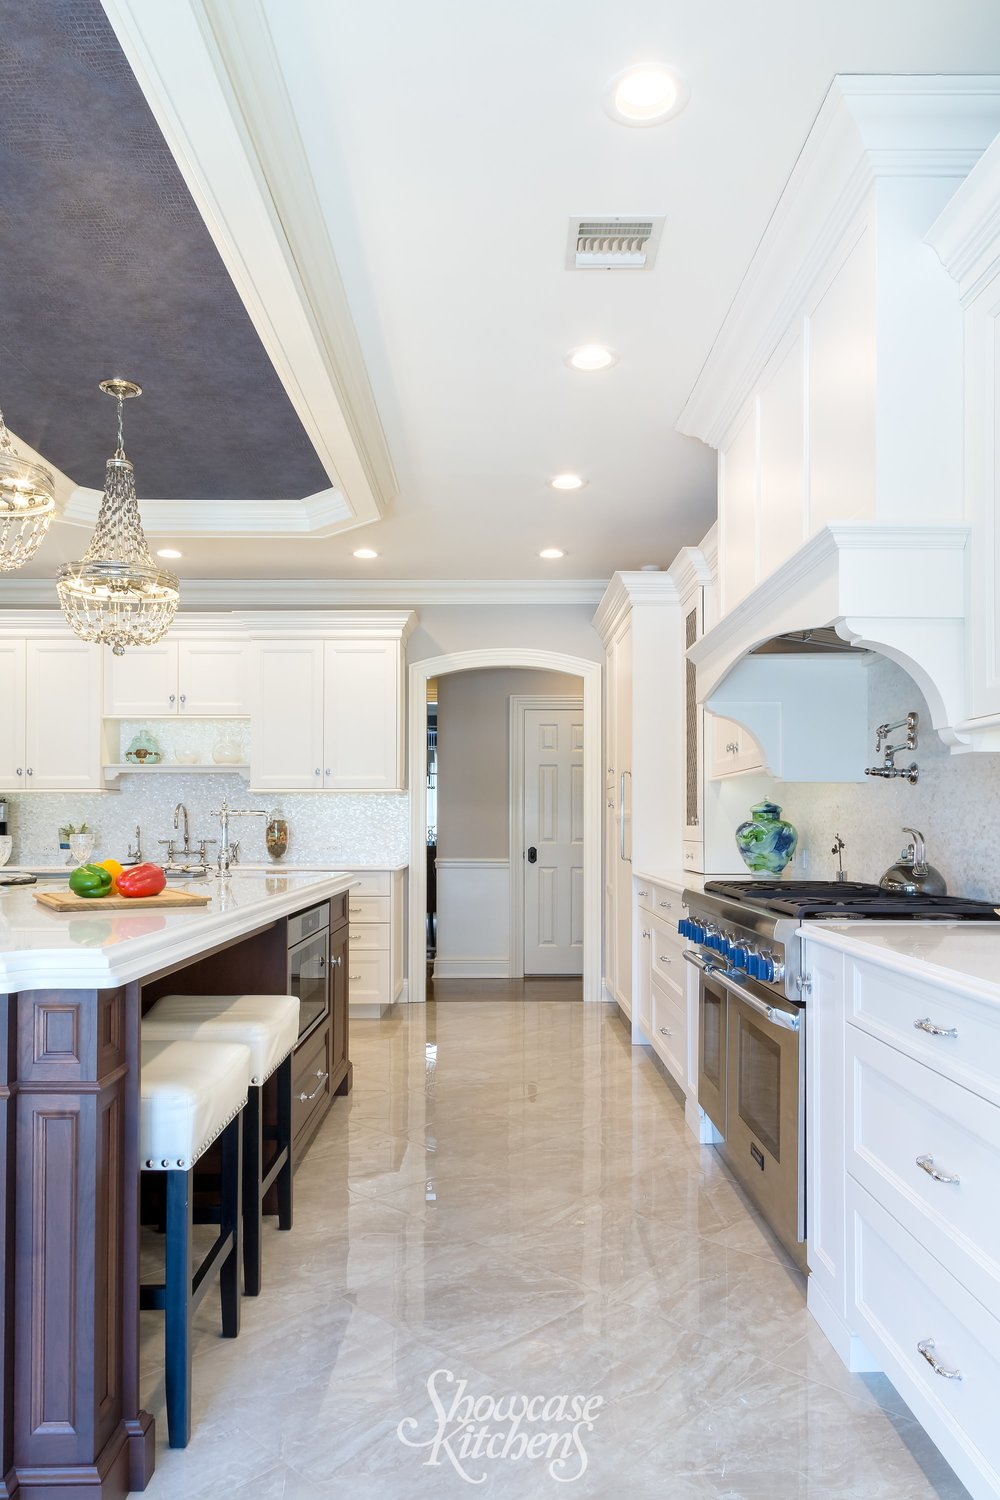 Transitional style kitchen with white marble floor